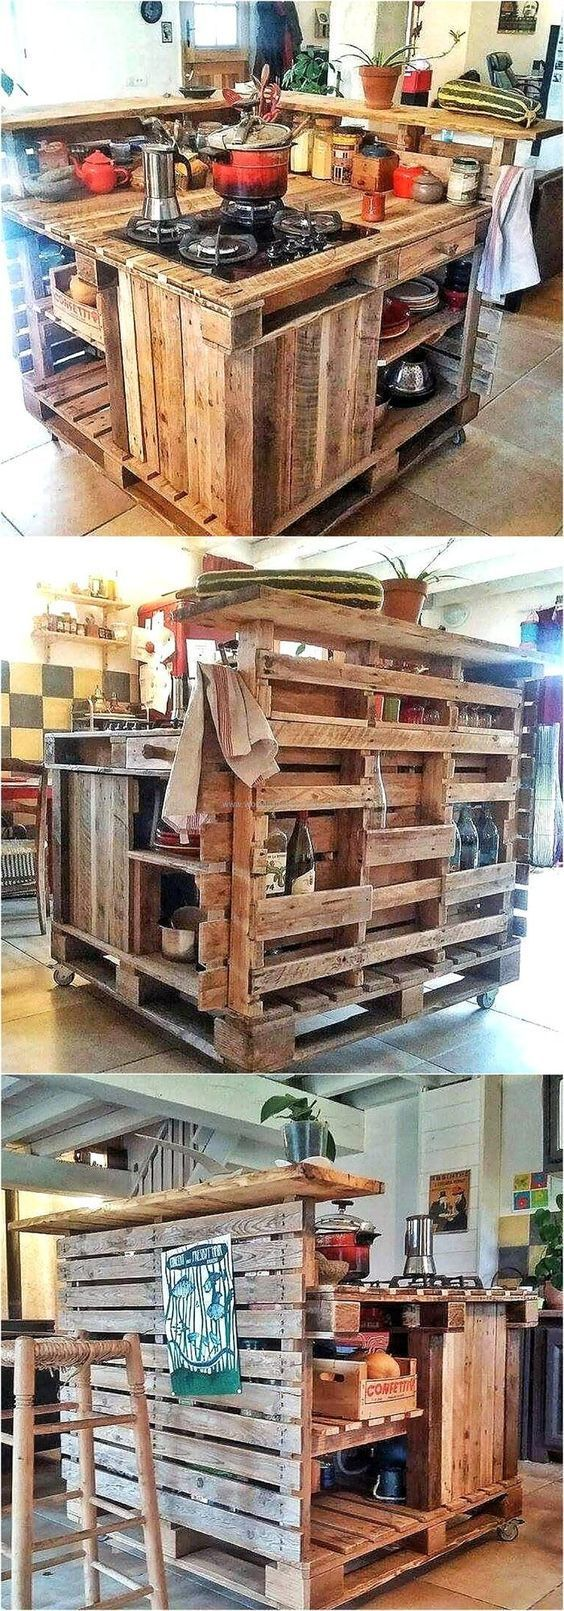 Kitchen island pallet wood - Creative Pallet Recycling Ideas By Les Palettes Du Coeur Pallet Kitchen Islandkitchen